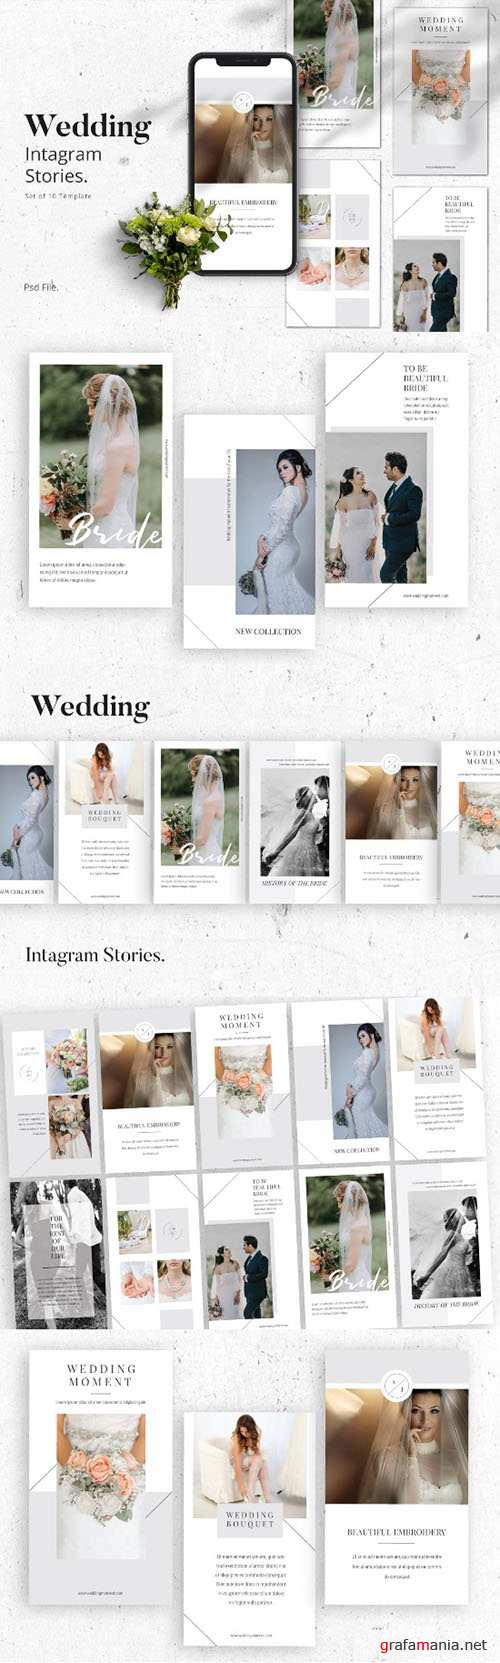 Wedding Moment Instagram Stories Template PSD